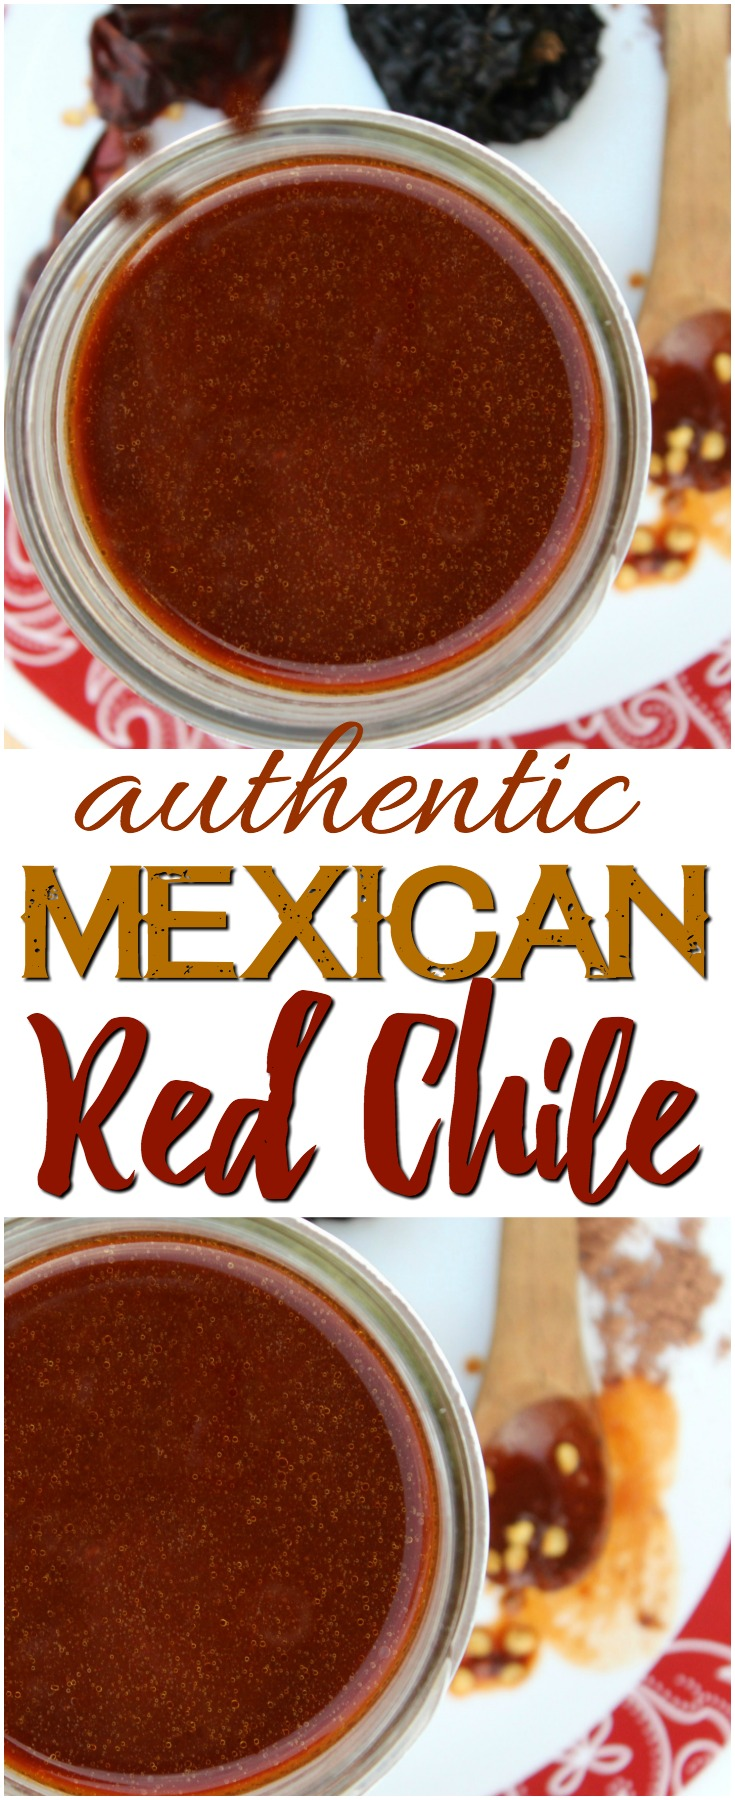 An easy yet flavorful authentic red chile sauce that can be used as a staple in a variety of Mexican recipes - from tamales to enchiladas, posole & more.